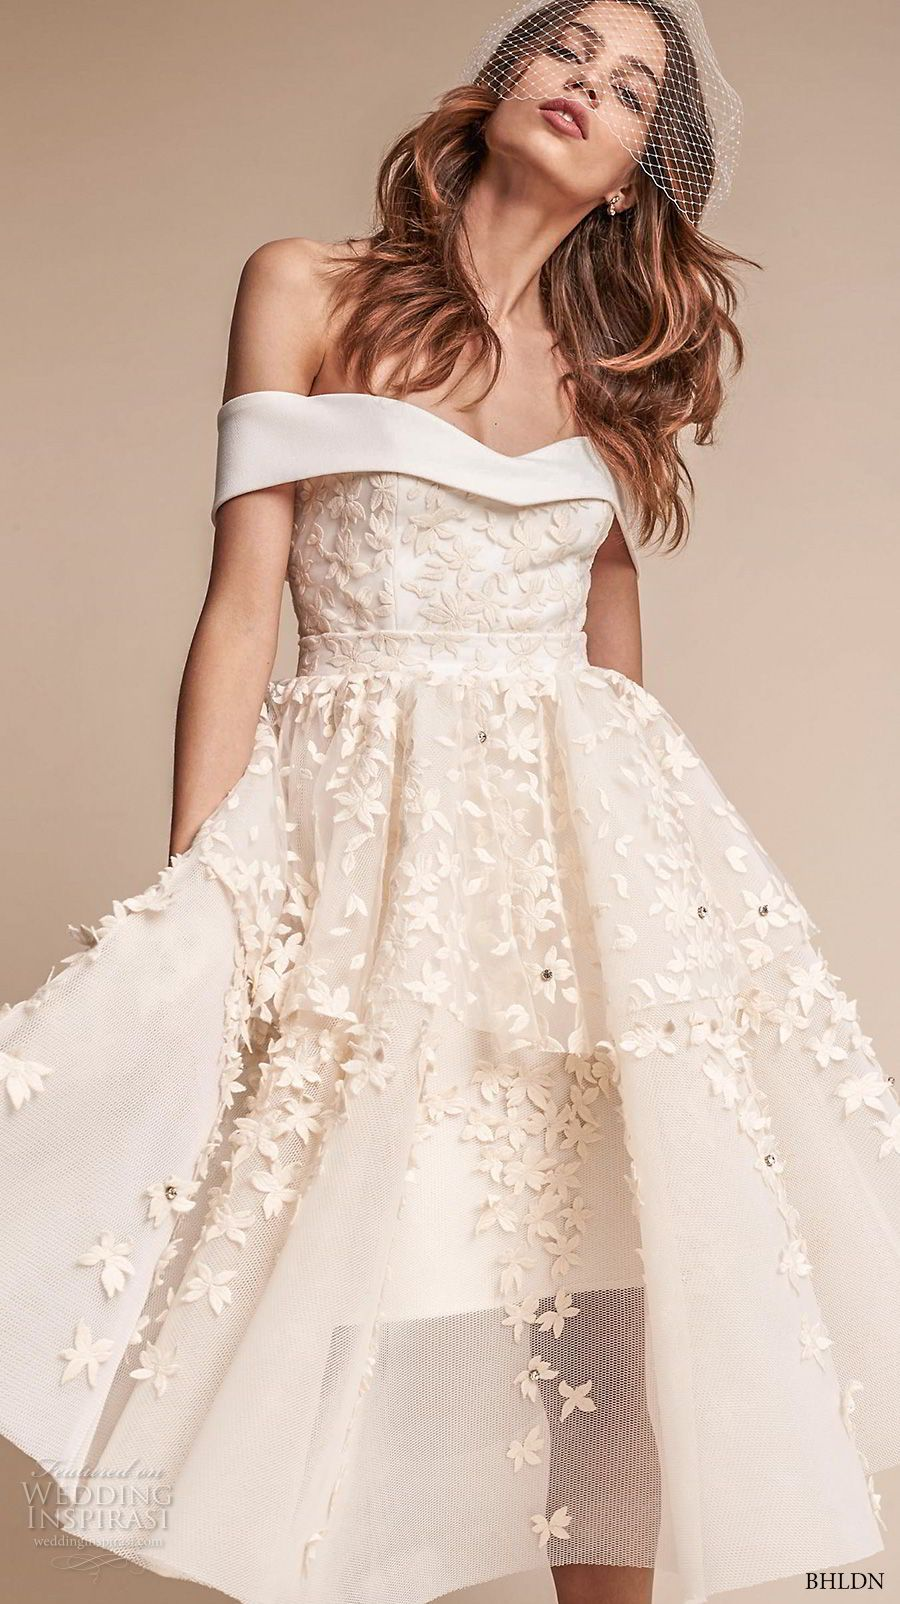 Bhldn freshest fall wedding looks u ucamericanaud bridal campaign